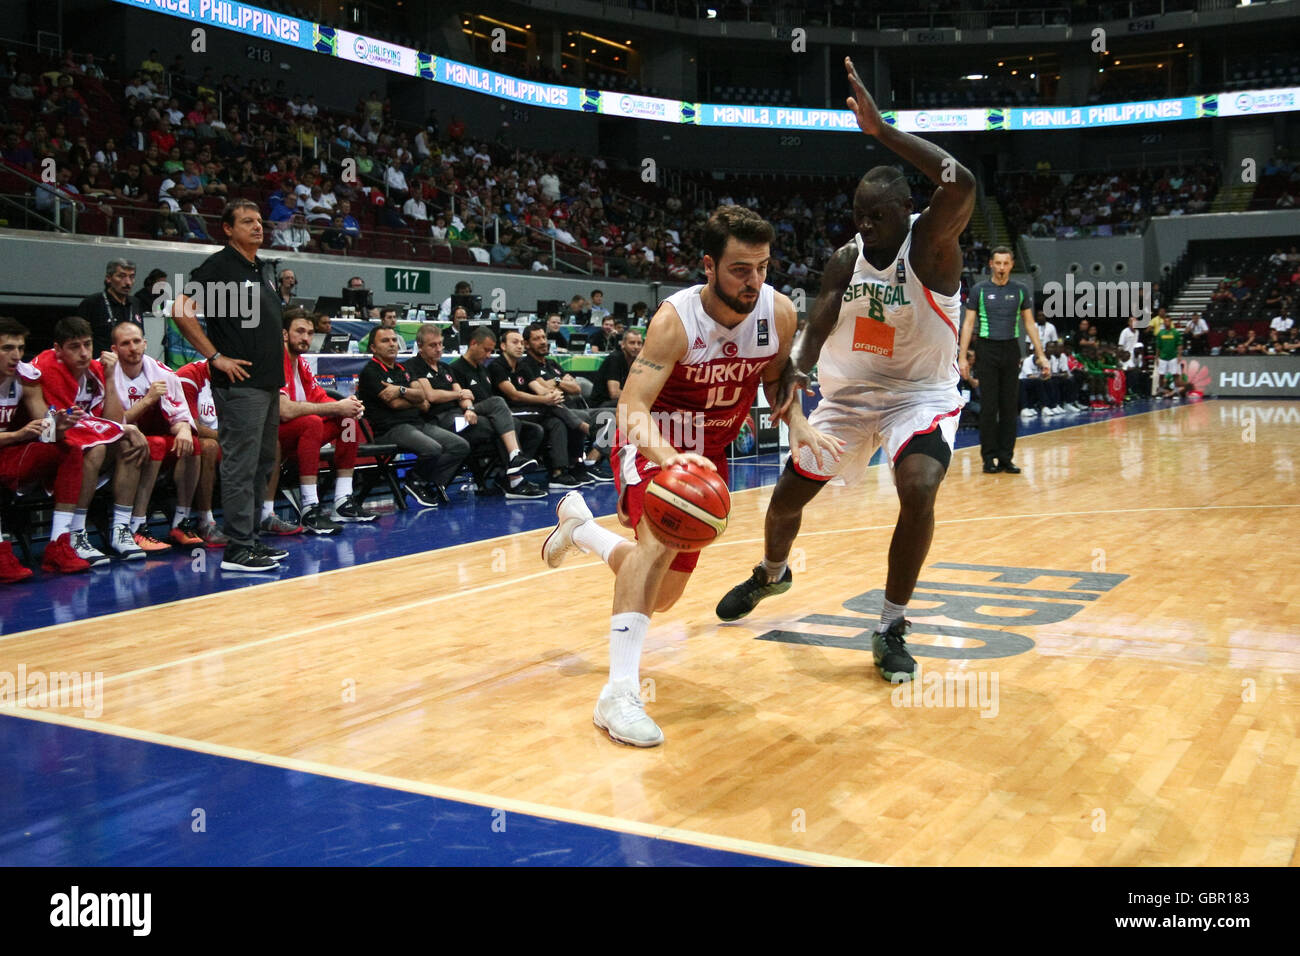 Philippines. 7th July, 2016. Turkey and Senegal battled for the semifinals at the Mall of Asia Arena in Pasay City - Stock Image